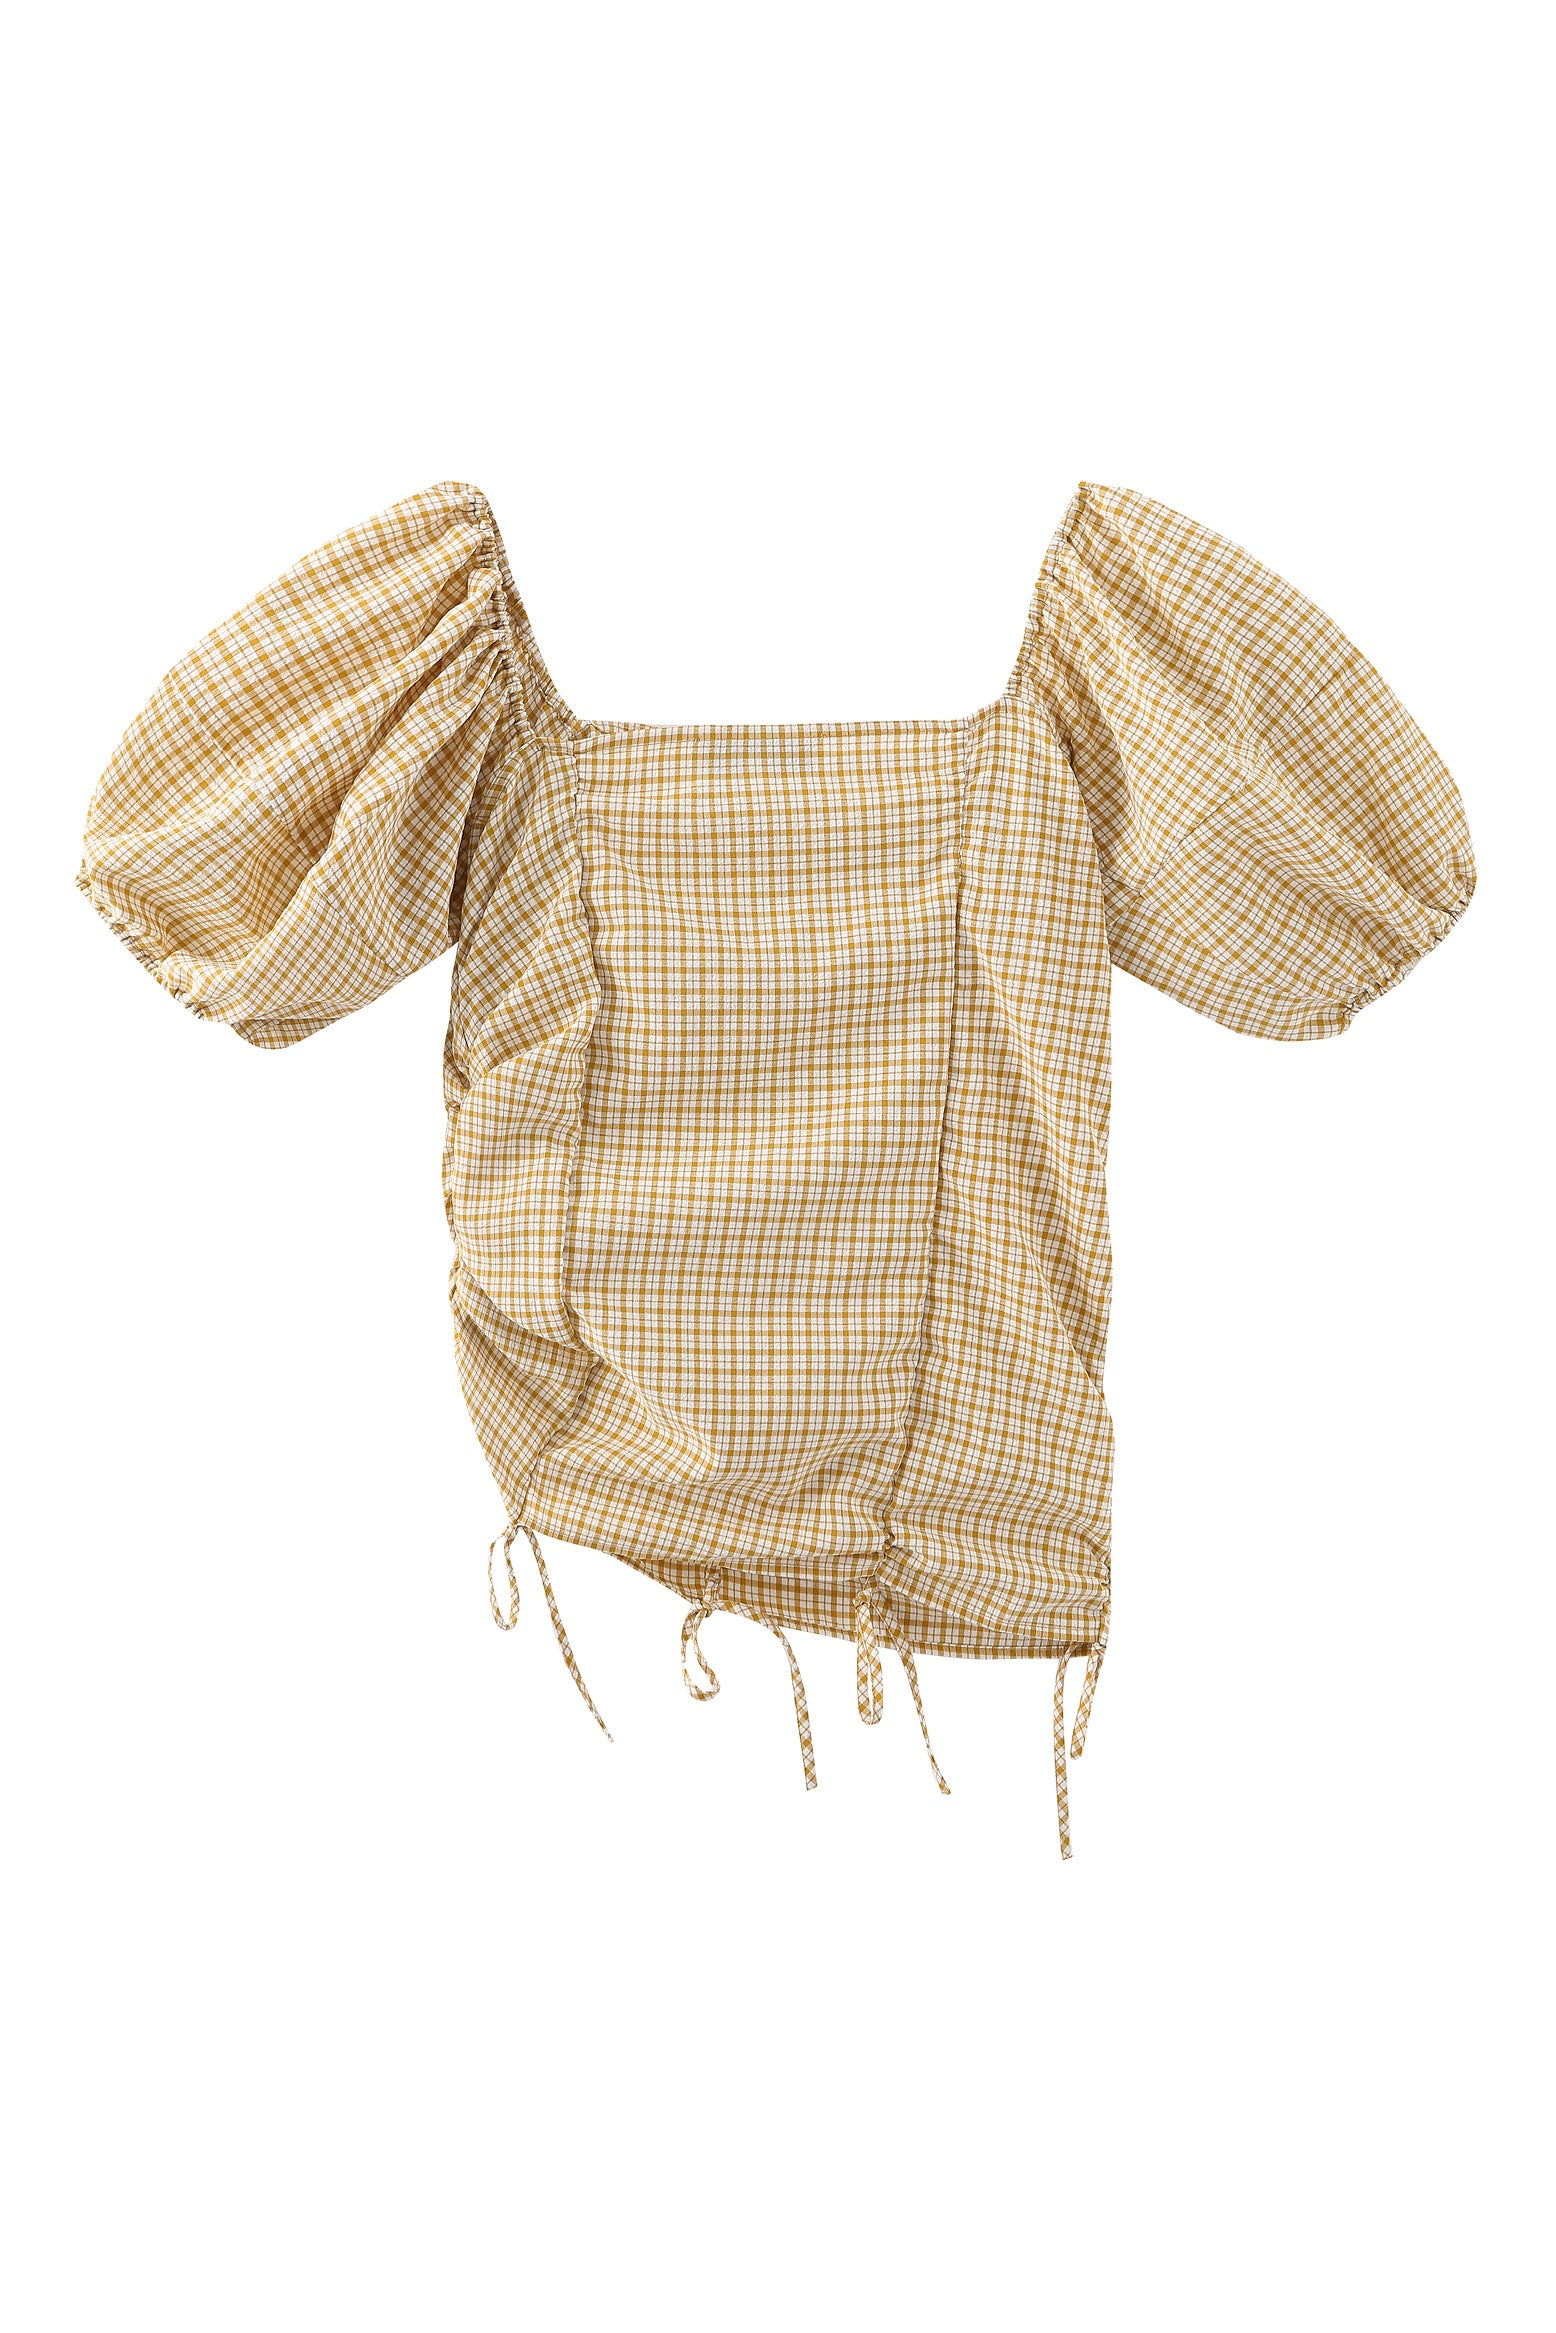 Baby Pina top in yellow gingham